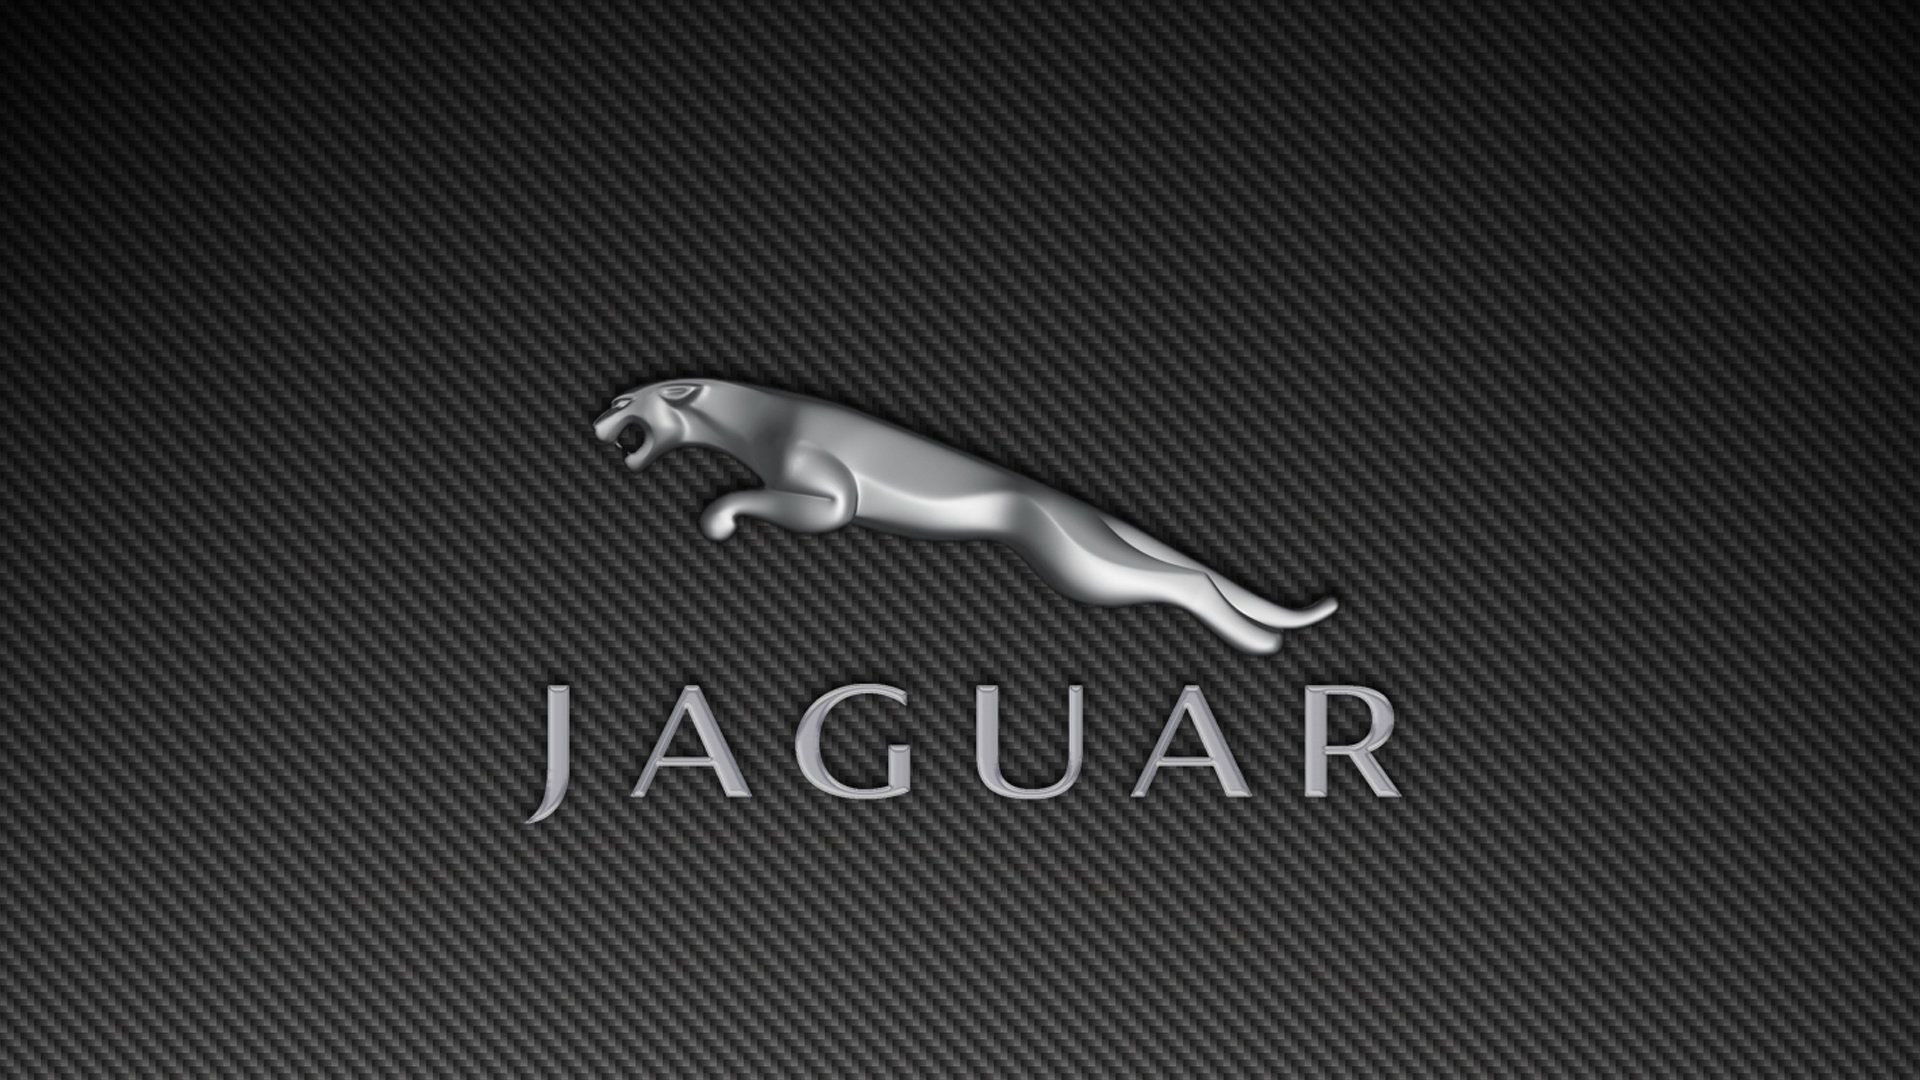 jaguar logo hd wallpaper 1080p wallpaper